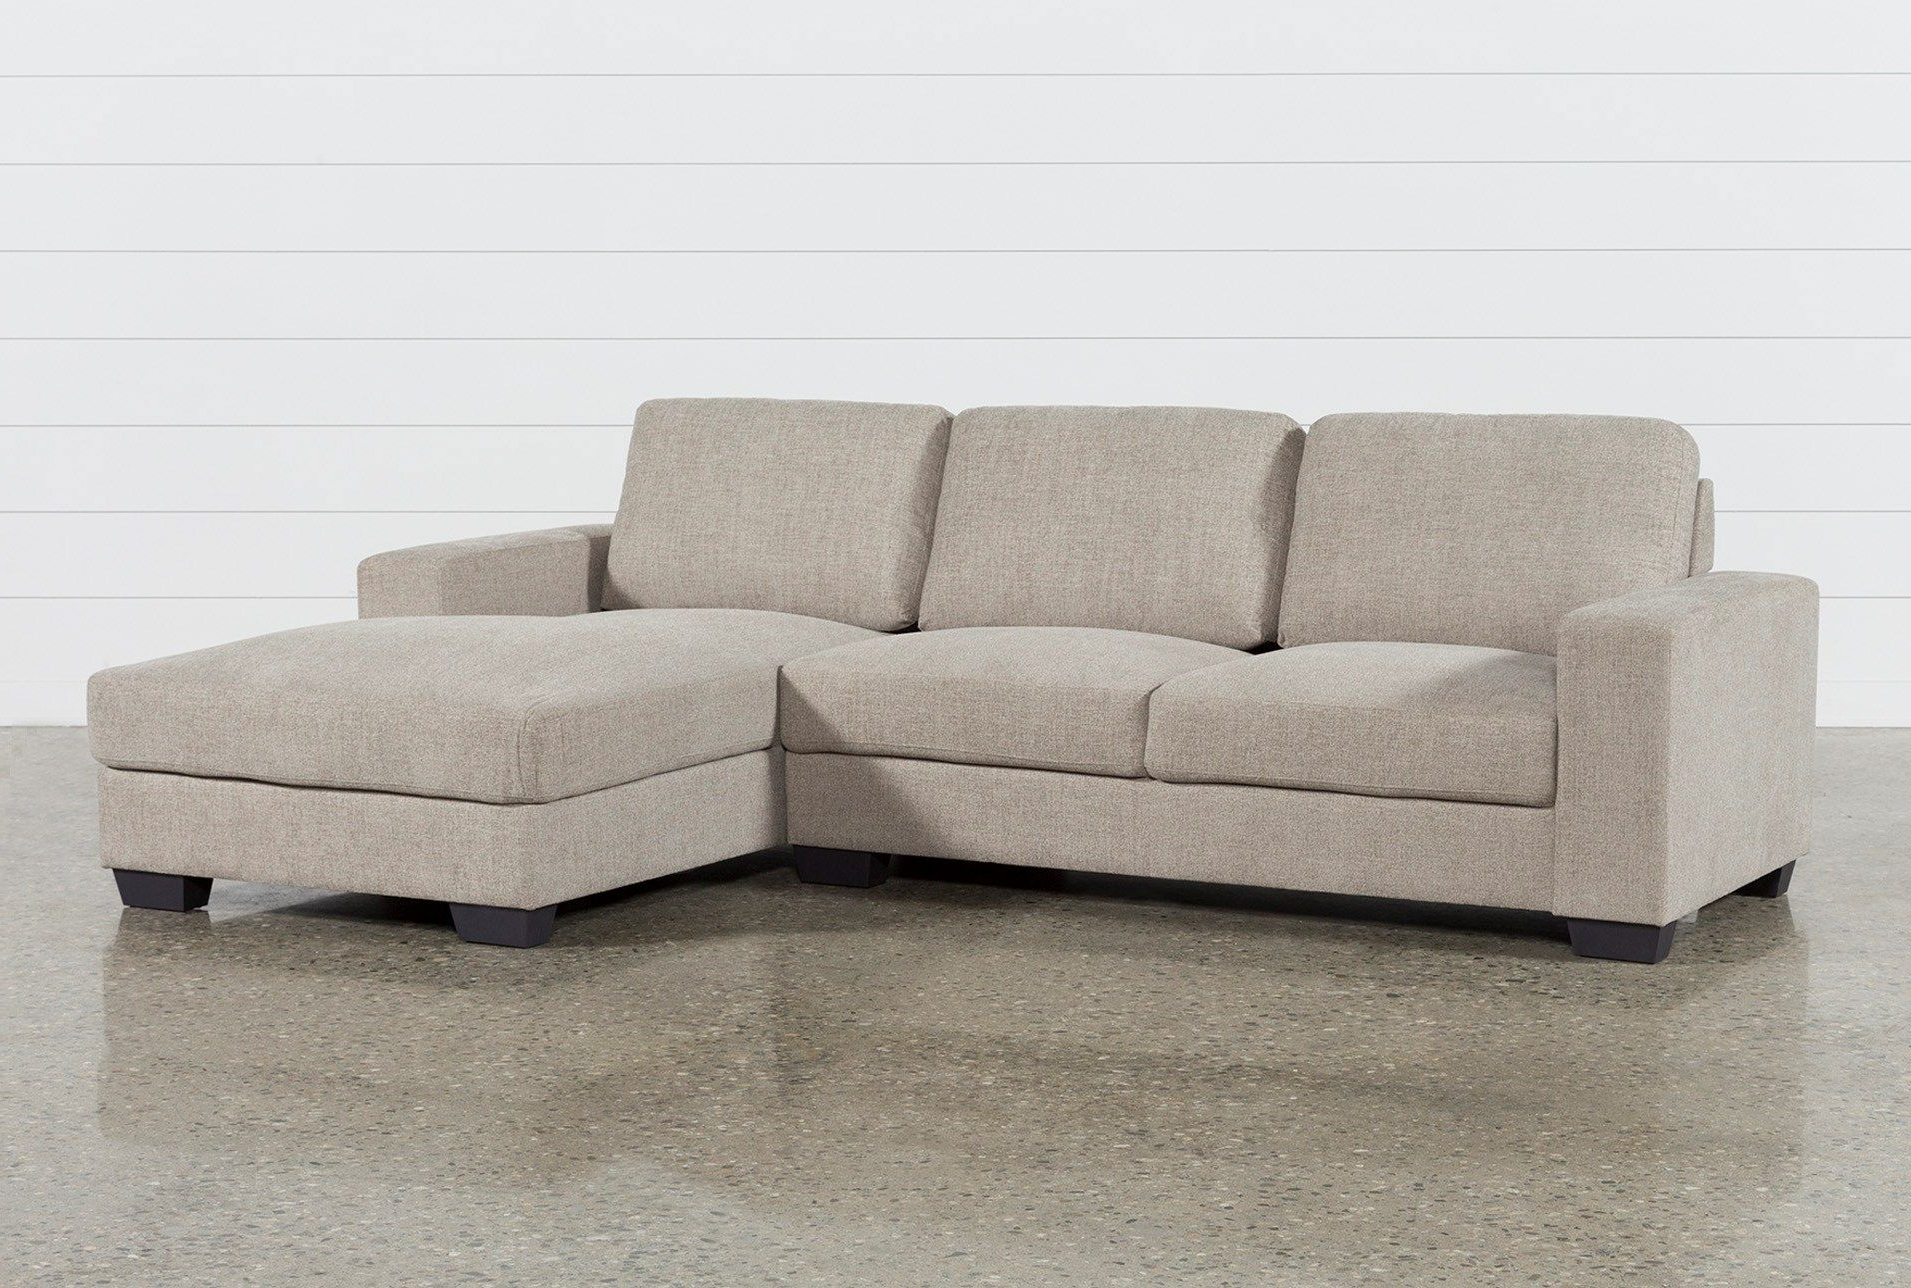 Jobs Oat 2 Piece Sectional With Right Facing Chaise In 2018 Regarding Recent Arrowmask 2 Piece Sectionals With Sleeper & Right Facing Chaise (View 10 of 20)